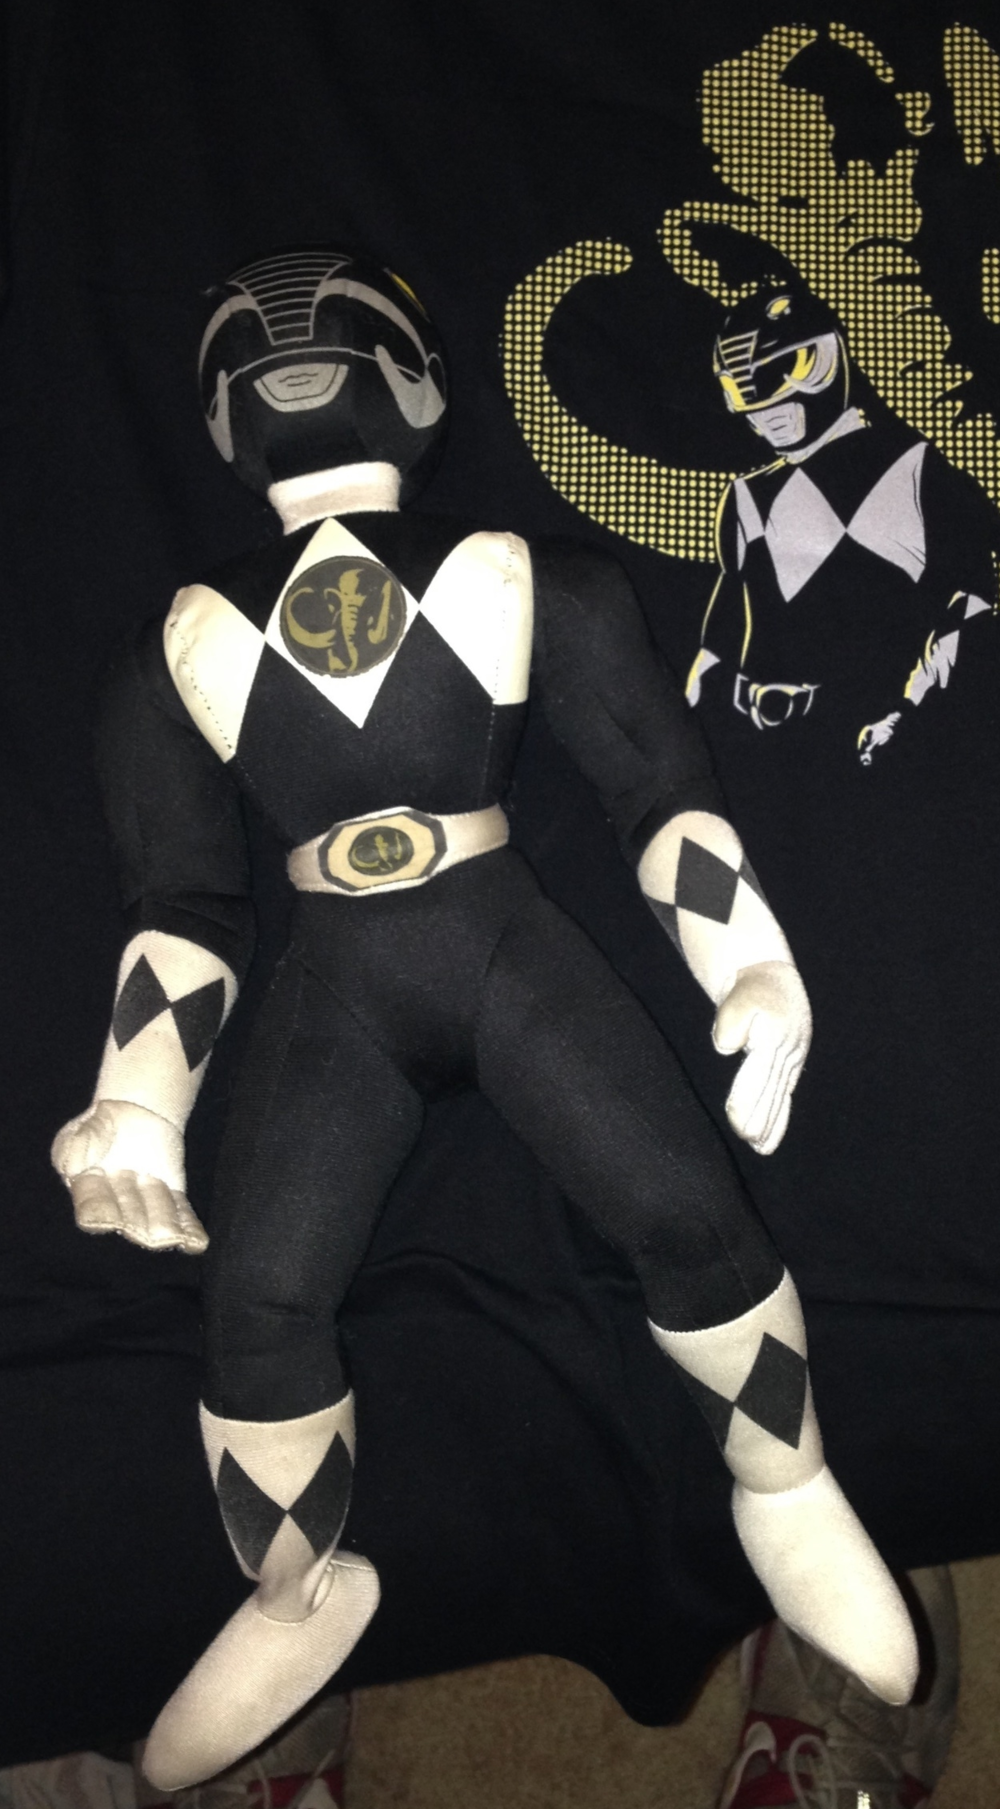 The prized Zach doll in all it's glory